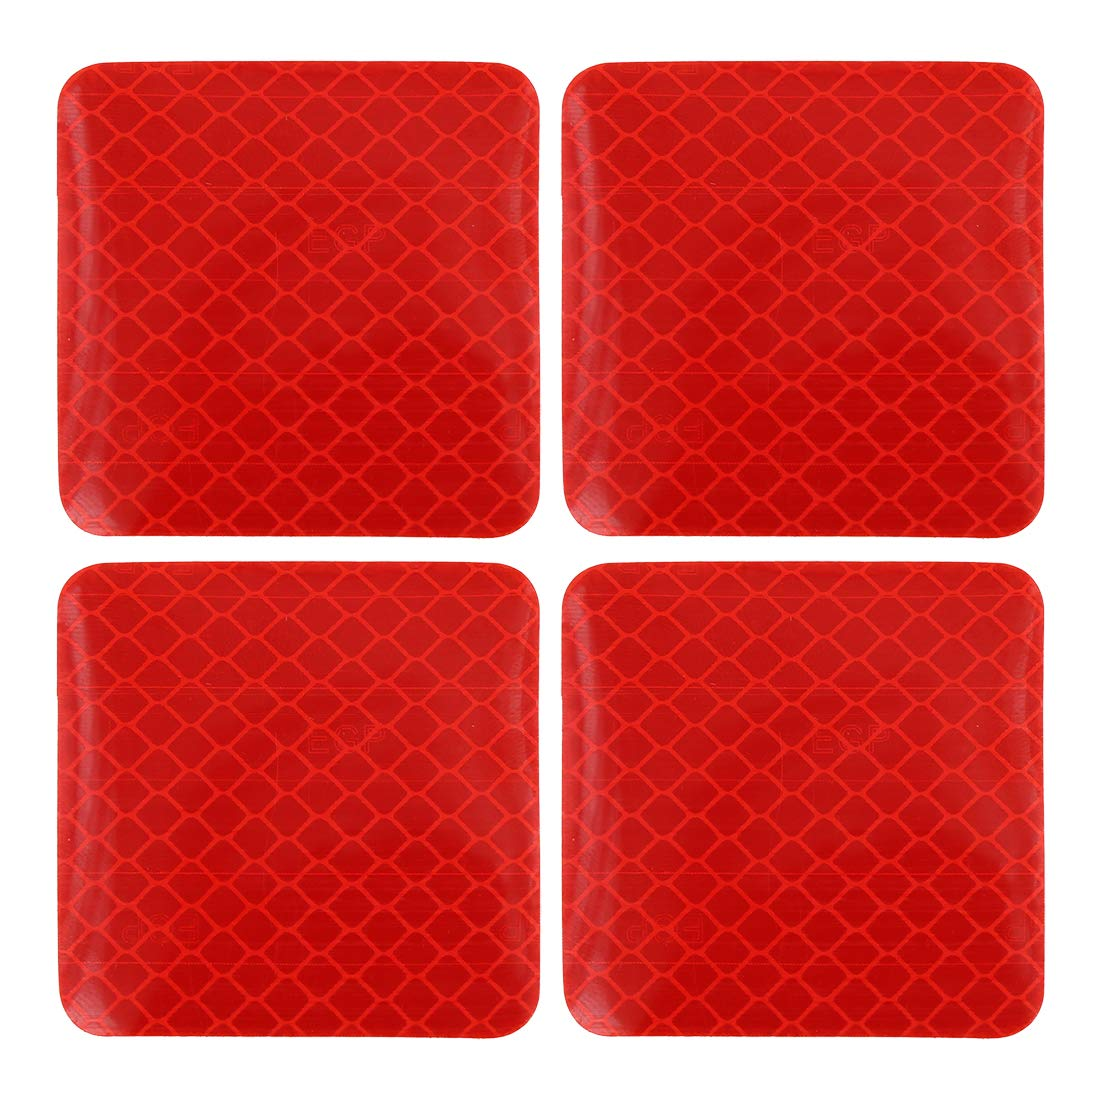 X AUTOHAUX 12pcs Automotive Reflective Stickers Night Visibility Safety Reflective Rear Bumper Tape Universal Adhesive for Car 5 x 5cm Red